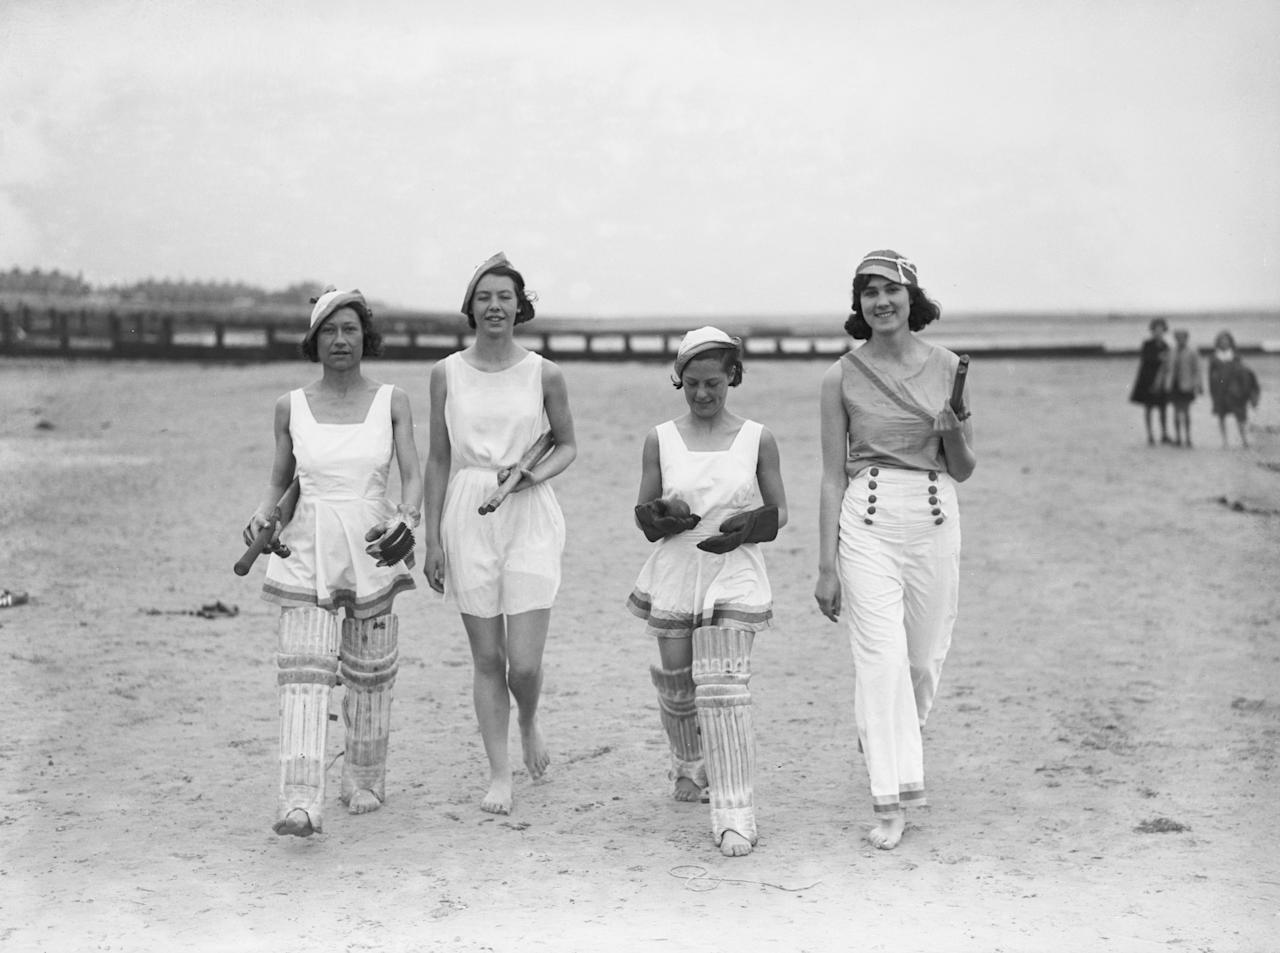 [ICCWWC2013] 12th May 1934:  A group of women dressed for a game of cricket on the beach.  (Photo by Reg Speller/Fox Photos/Getty Images)